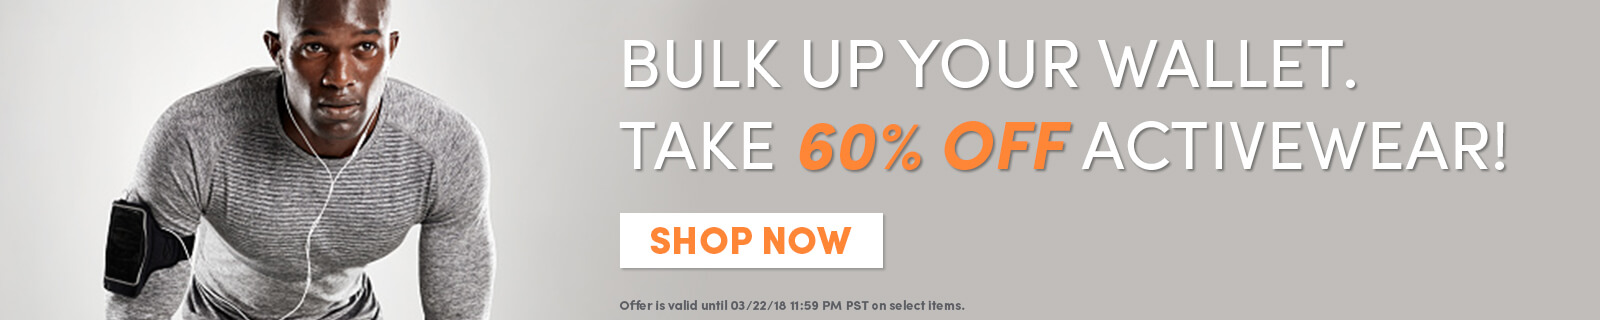 Take 60% off Activewear! Shop Now